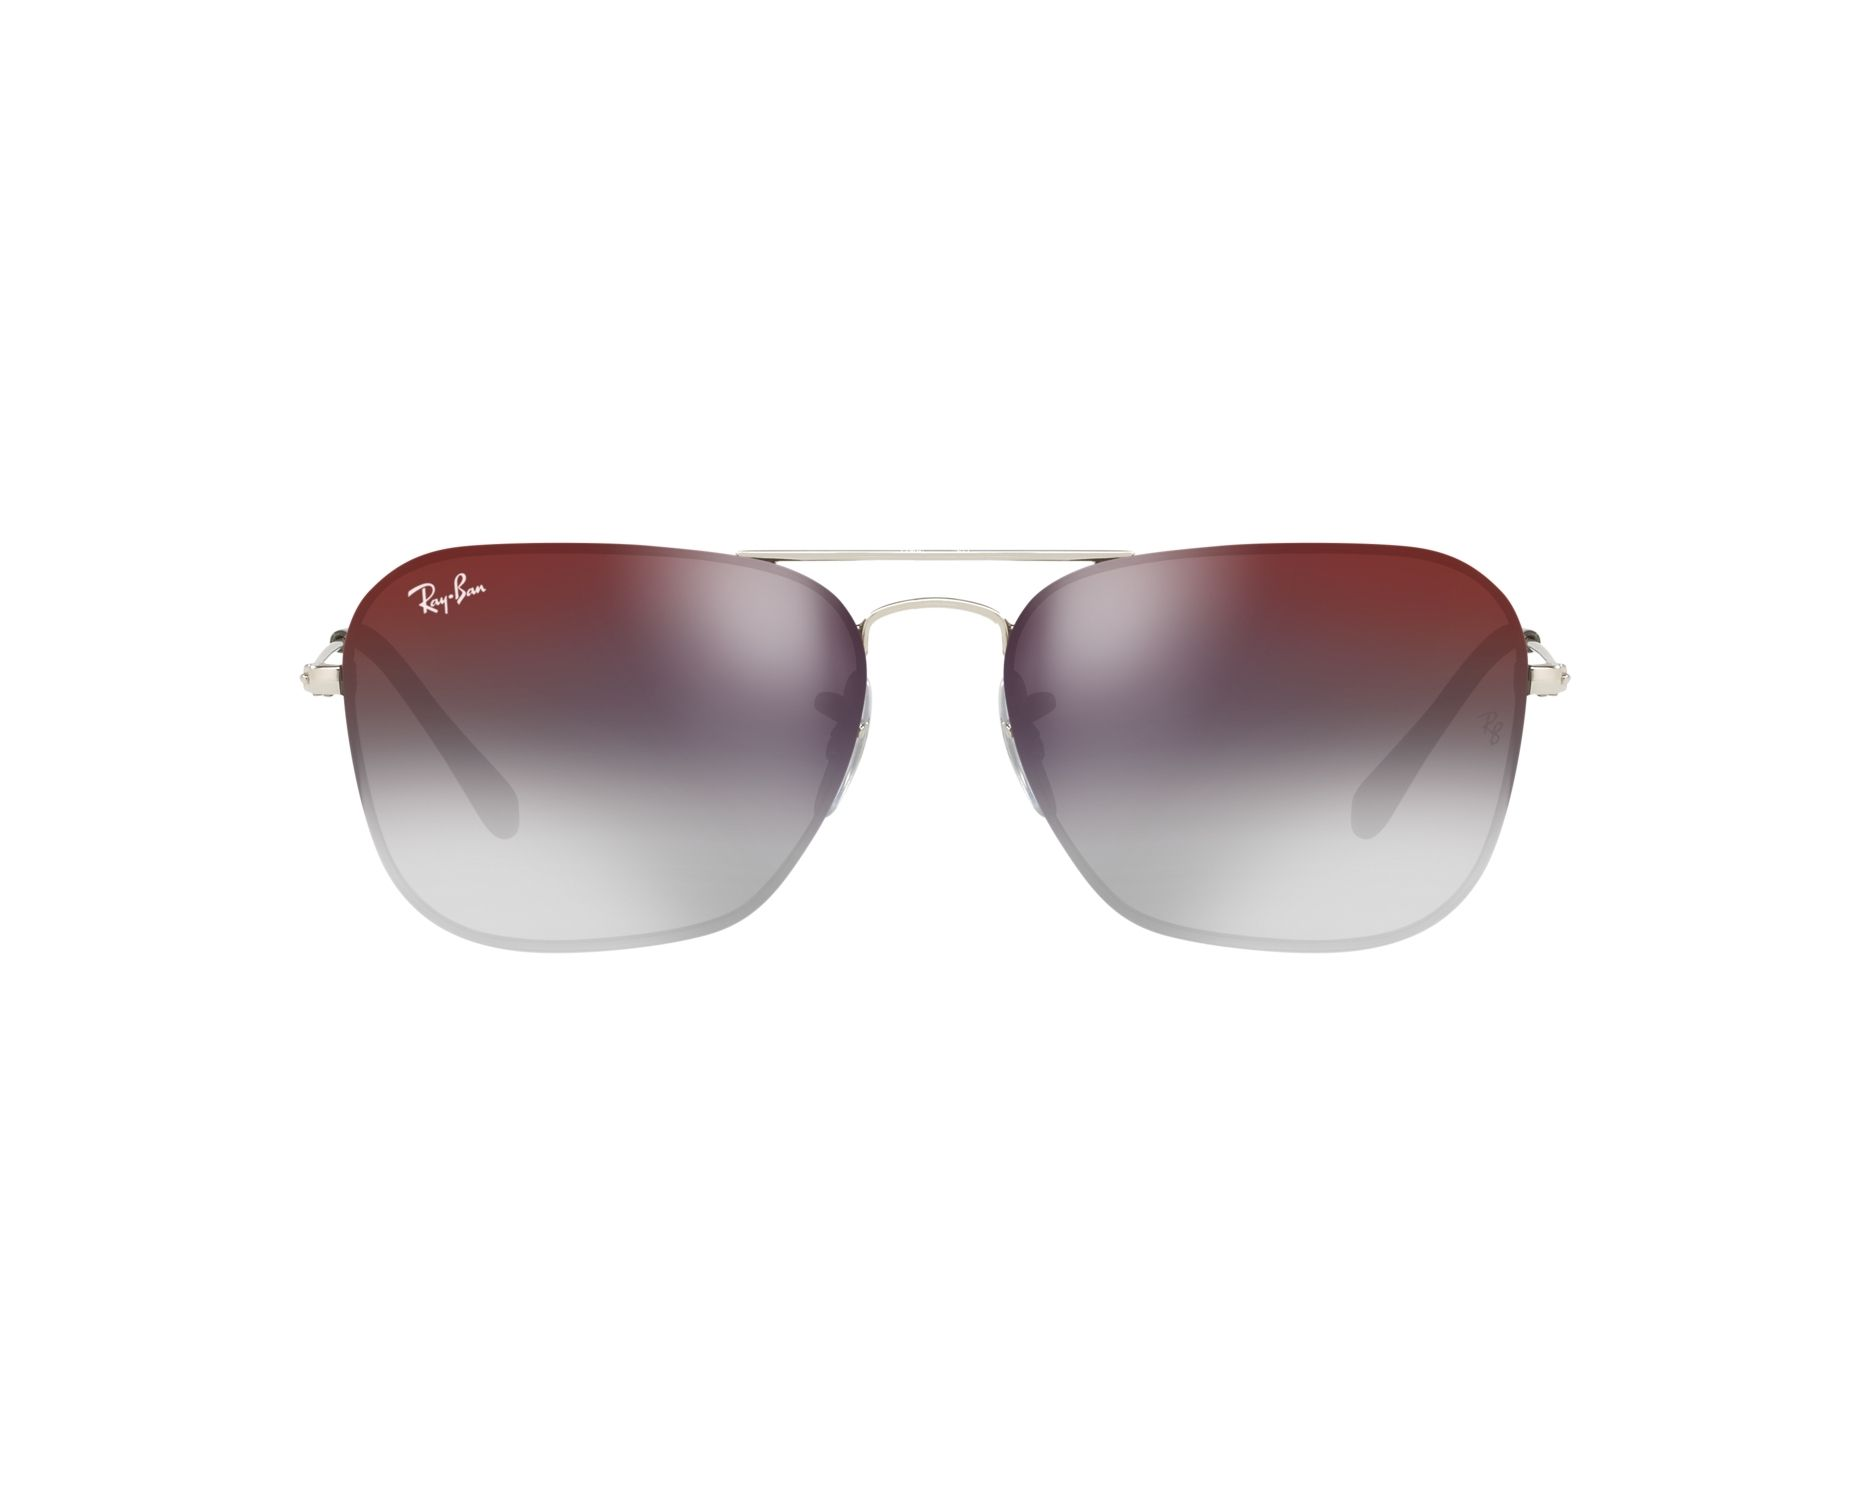 c49e301ff9e34 Sunglasses Ray-Ban RB-3603 003 U0 56-14 Silver 360 degree